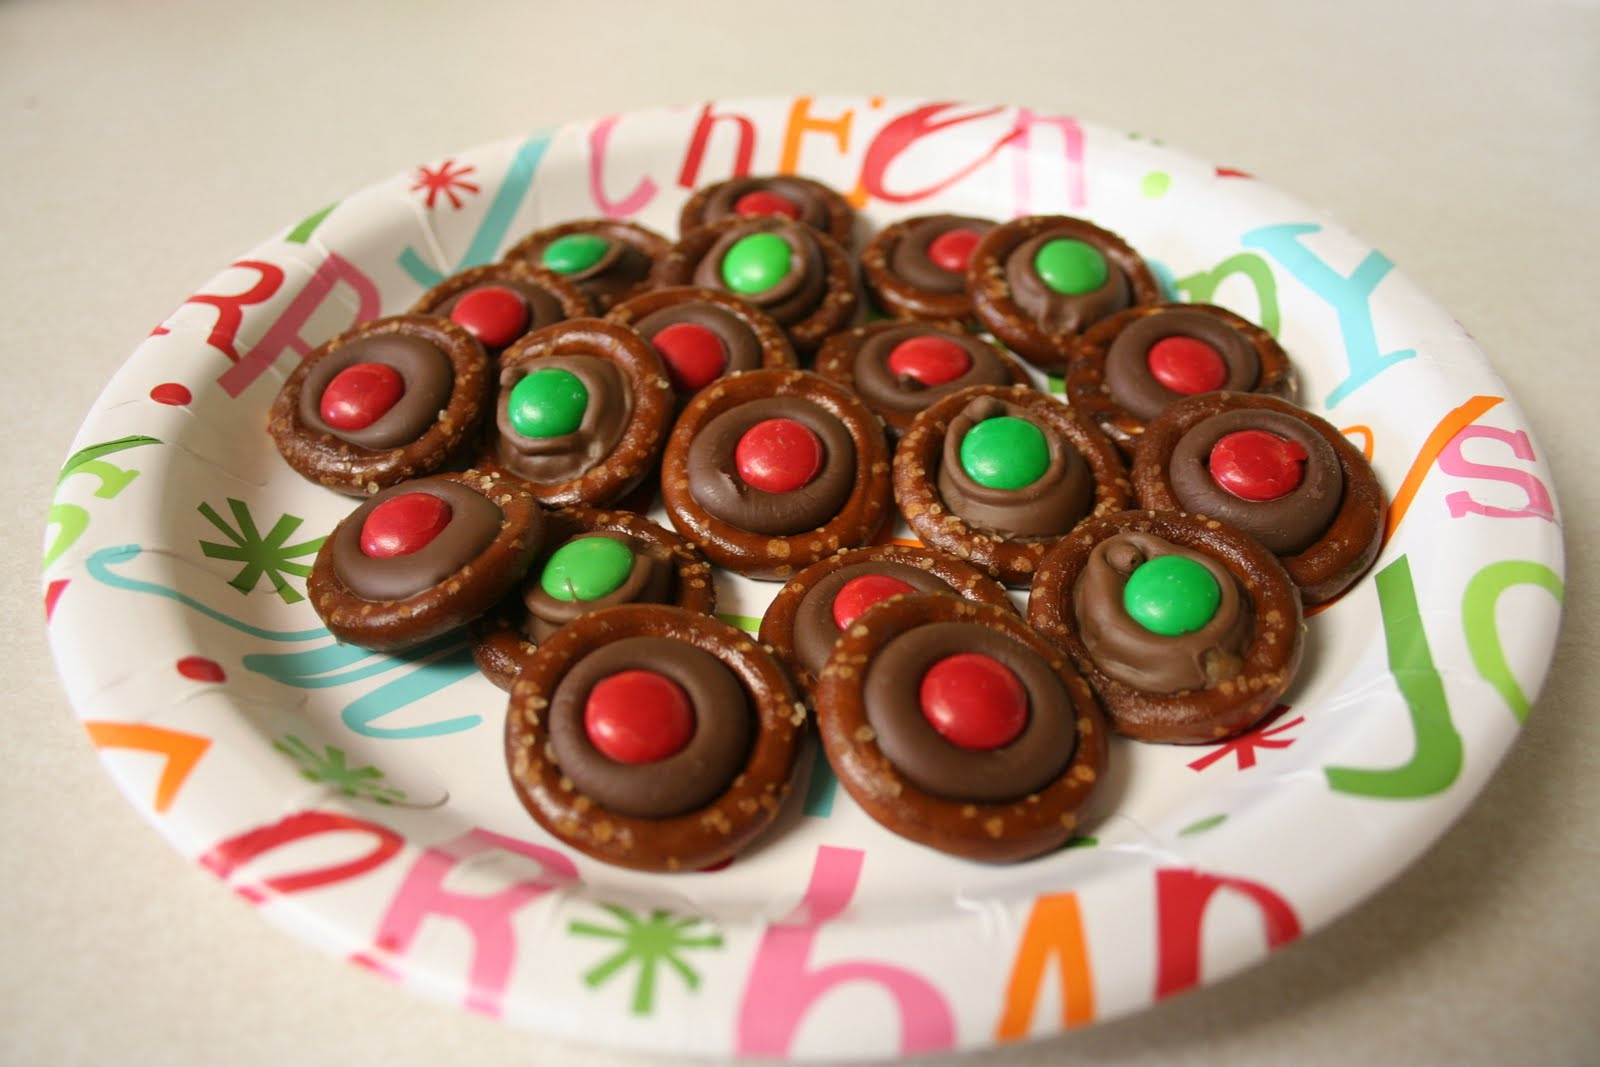 Christmas Pretzels Recipes  Chelsea Gets Married Christmas Recipe 1 Chocolate